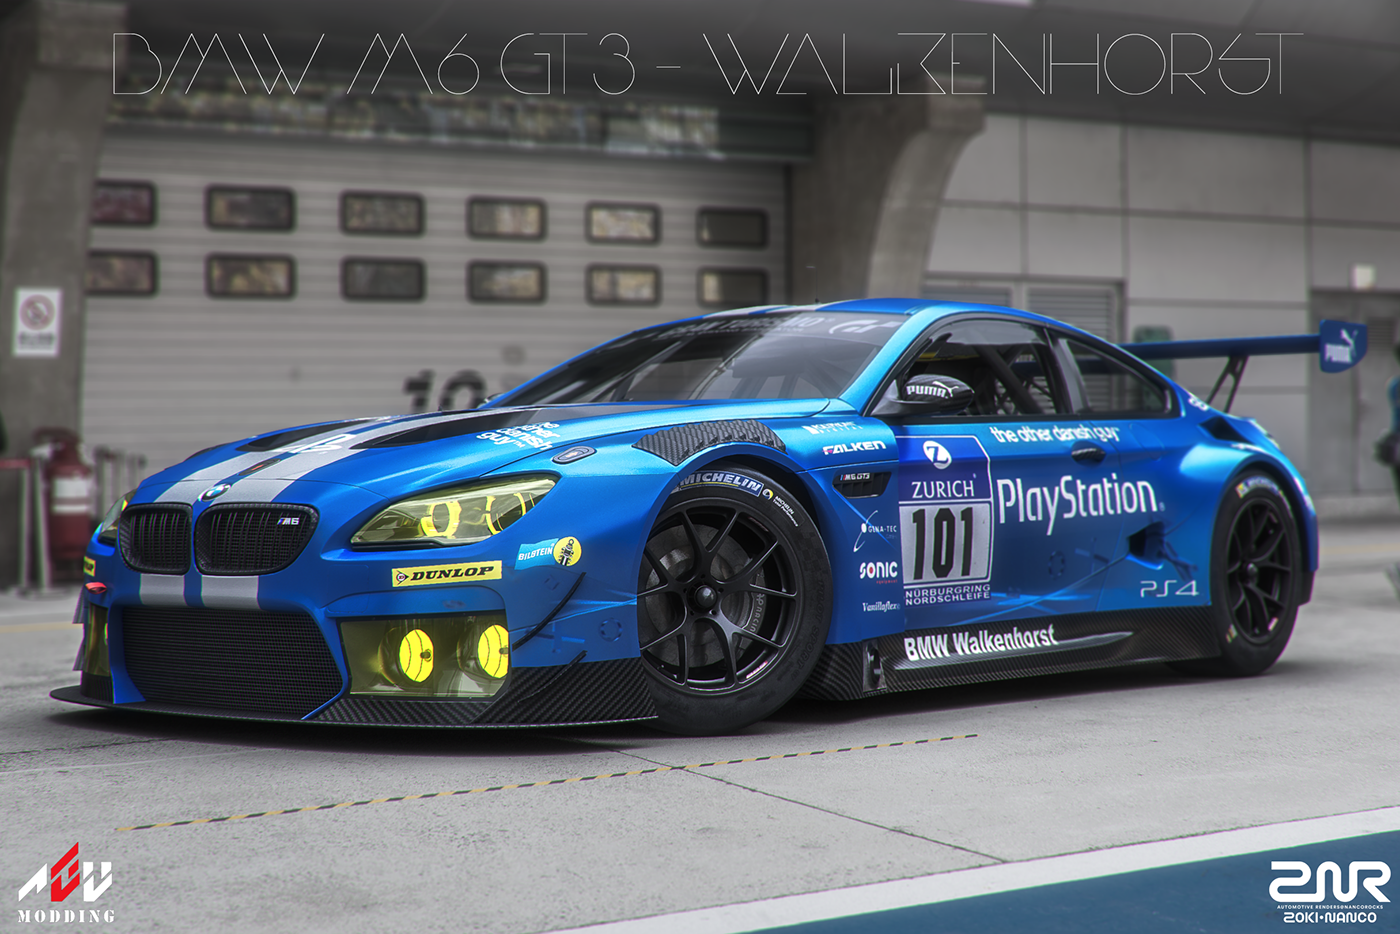 Bmw M6 Gt3 Walkenhorst On Behance